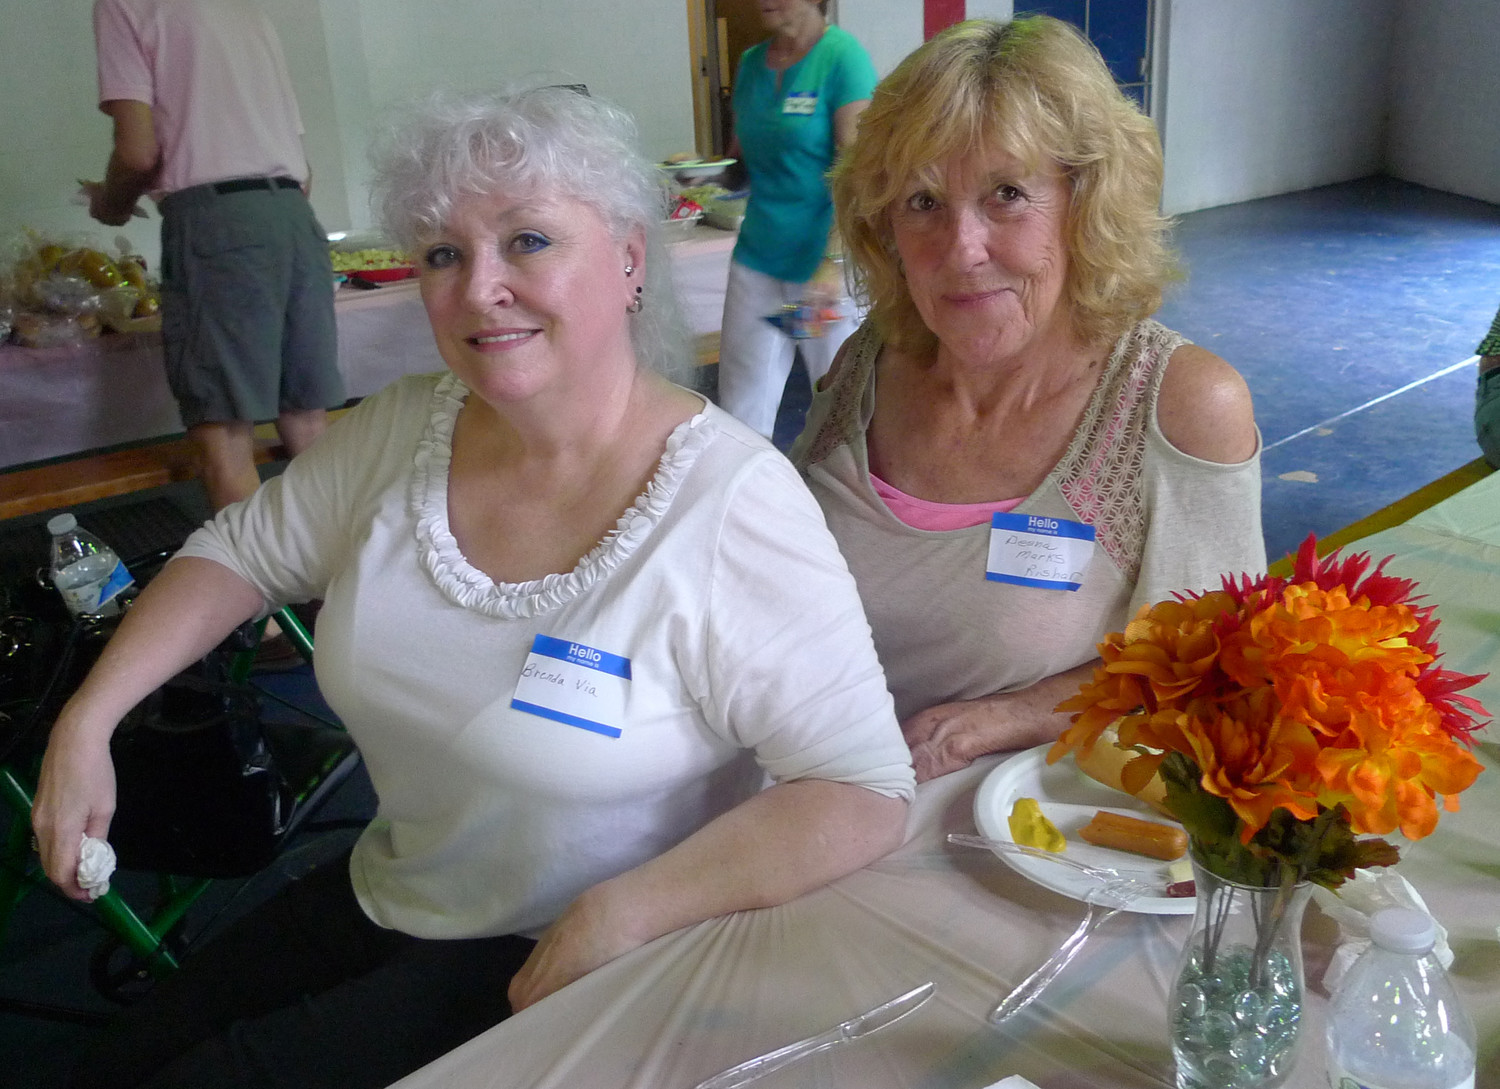 Brenda Via (left) and Deena Marks Rishar at The Milk Bar reunion.